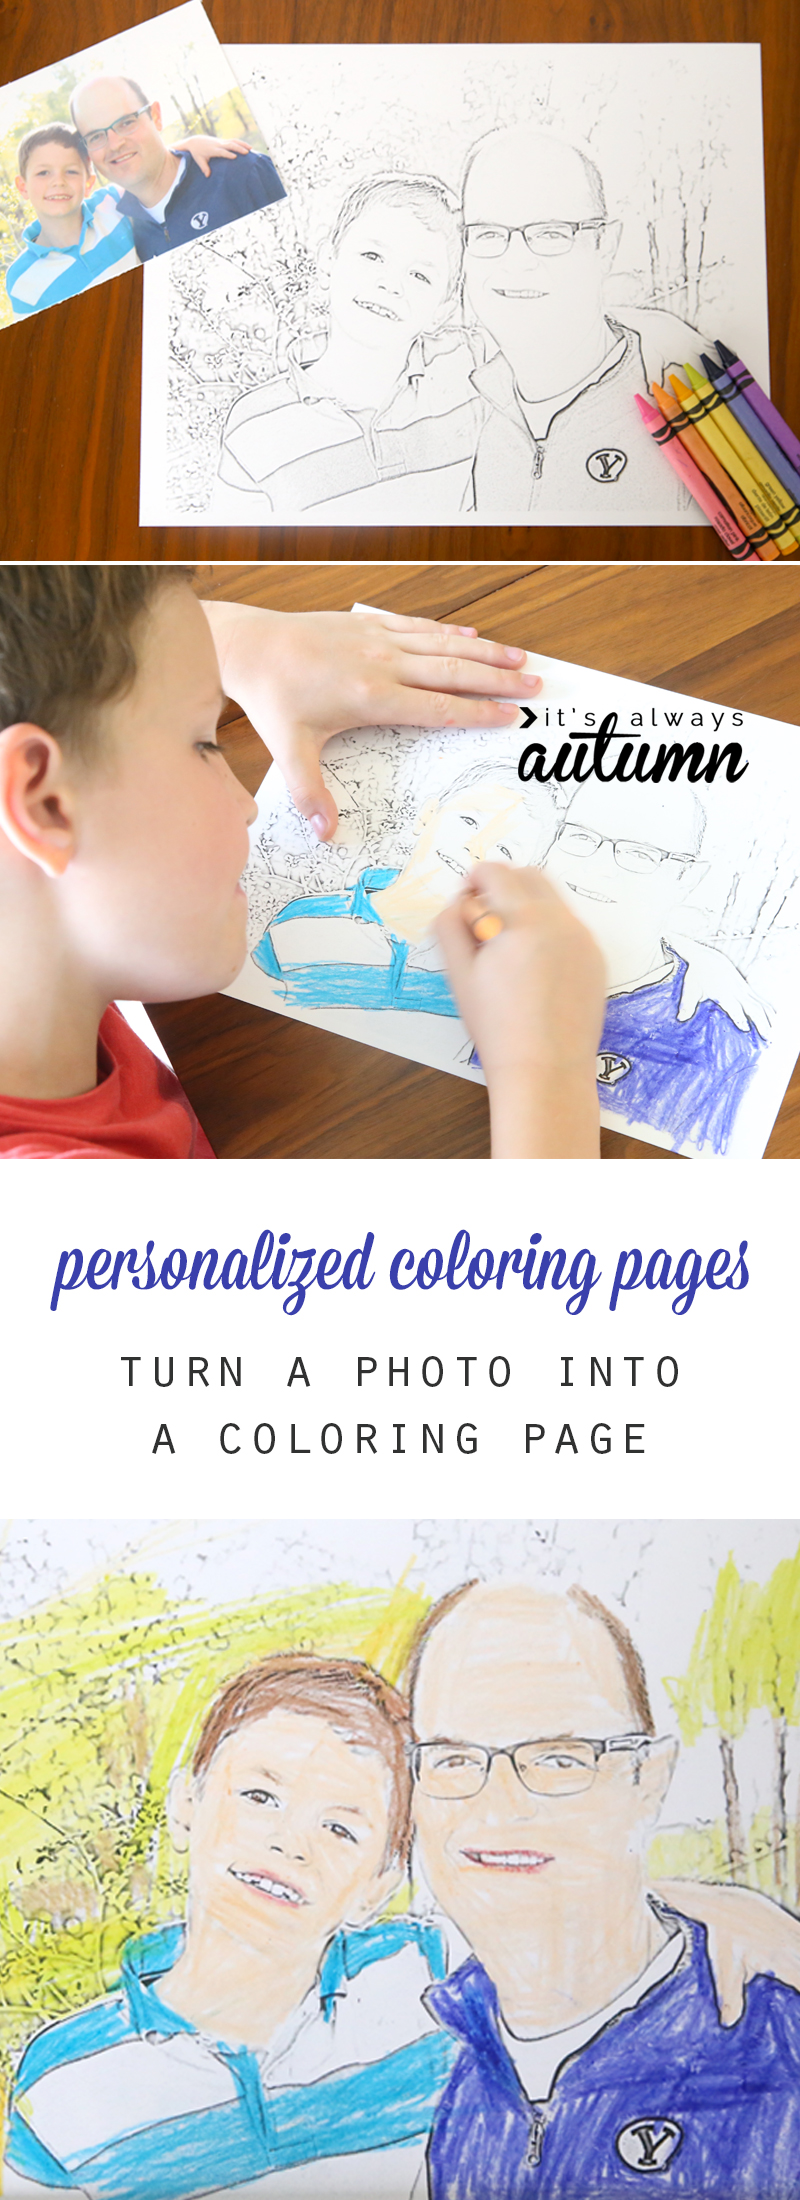 how to make personalized coloring pages for your kids it u0027s